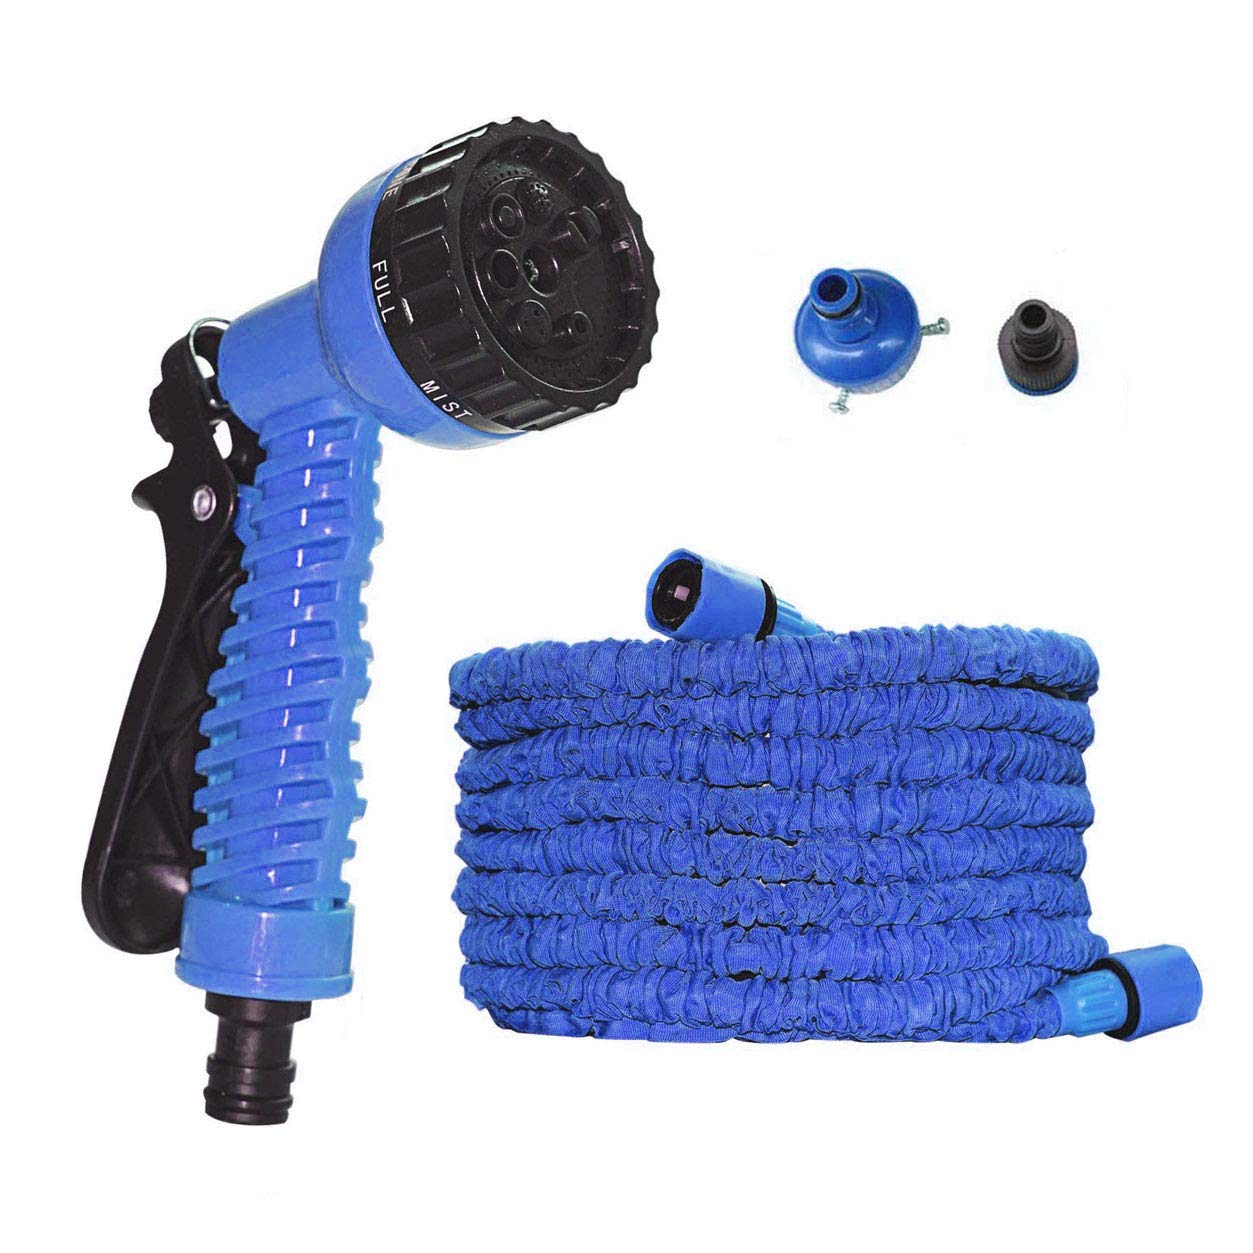 Coroler Expandable Garden Hose - 50ft Strong Expanding Garden Water Hose - Flexible Expandable Stretch Hosepipe 7 Pattern Spray Nozzle Car Garden Watering Needs (Blue)